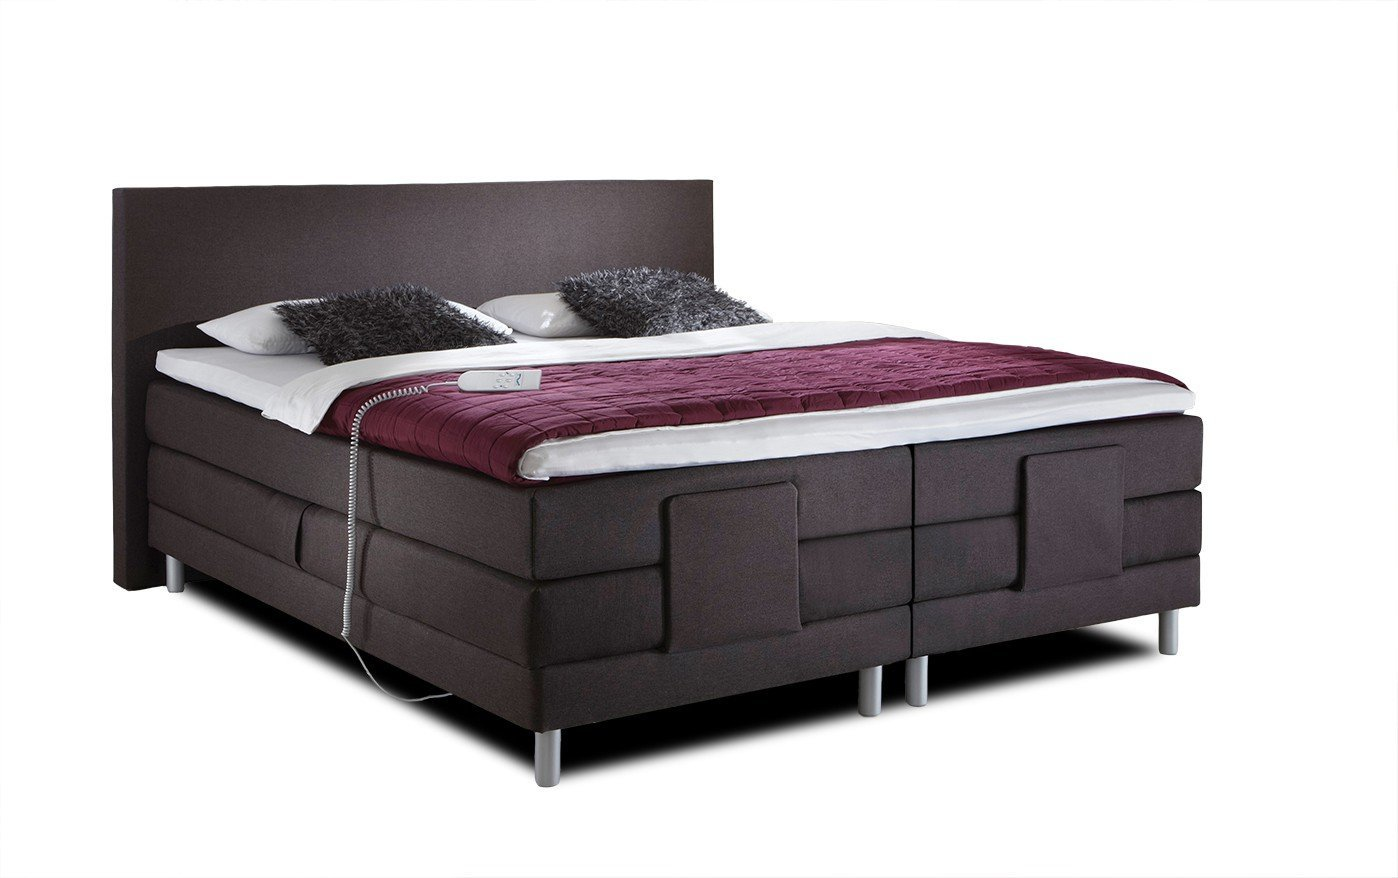 boxspringbett hotelbett elektrisch verstellbar vital. Black Bedroom Furniture Sets. Home Design Ideas